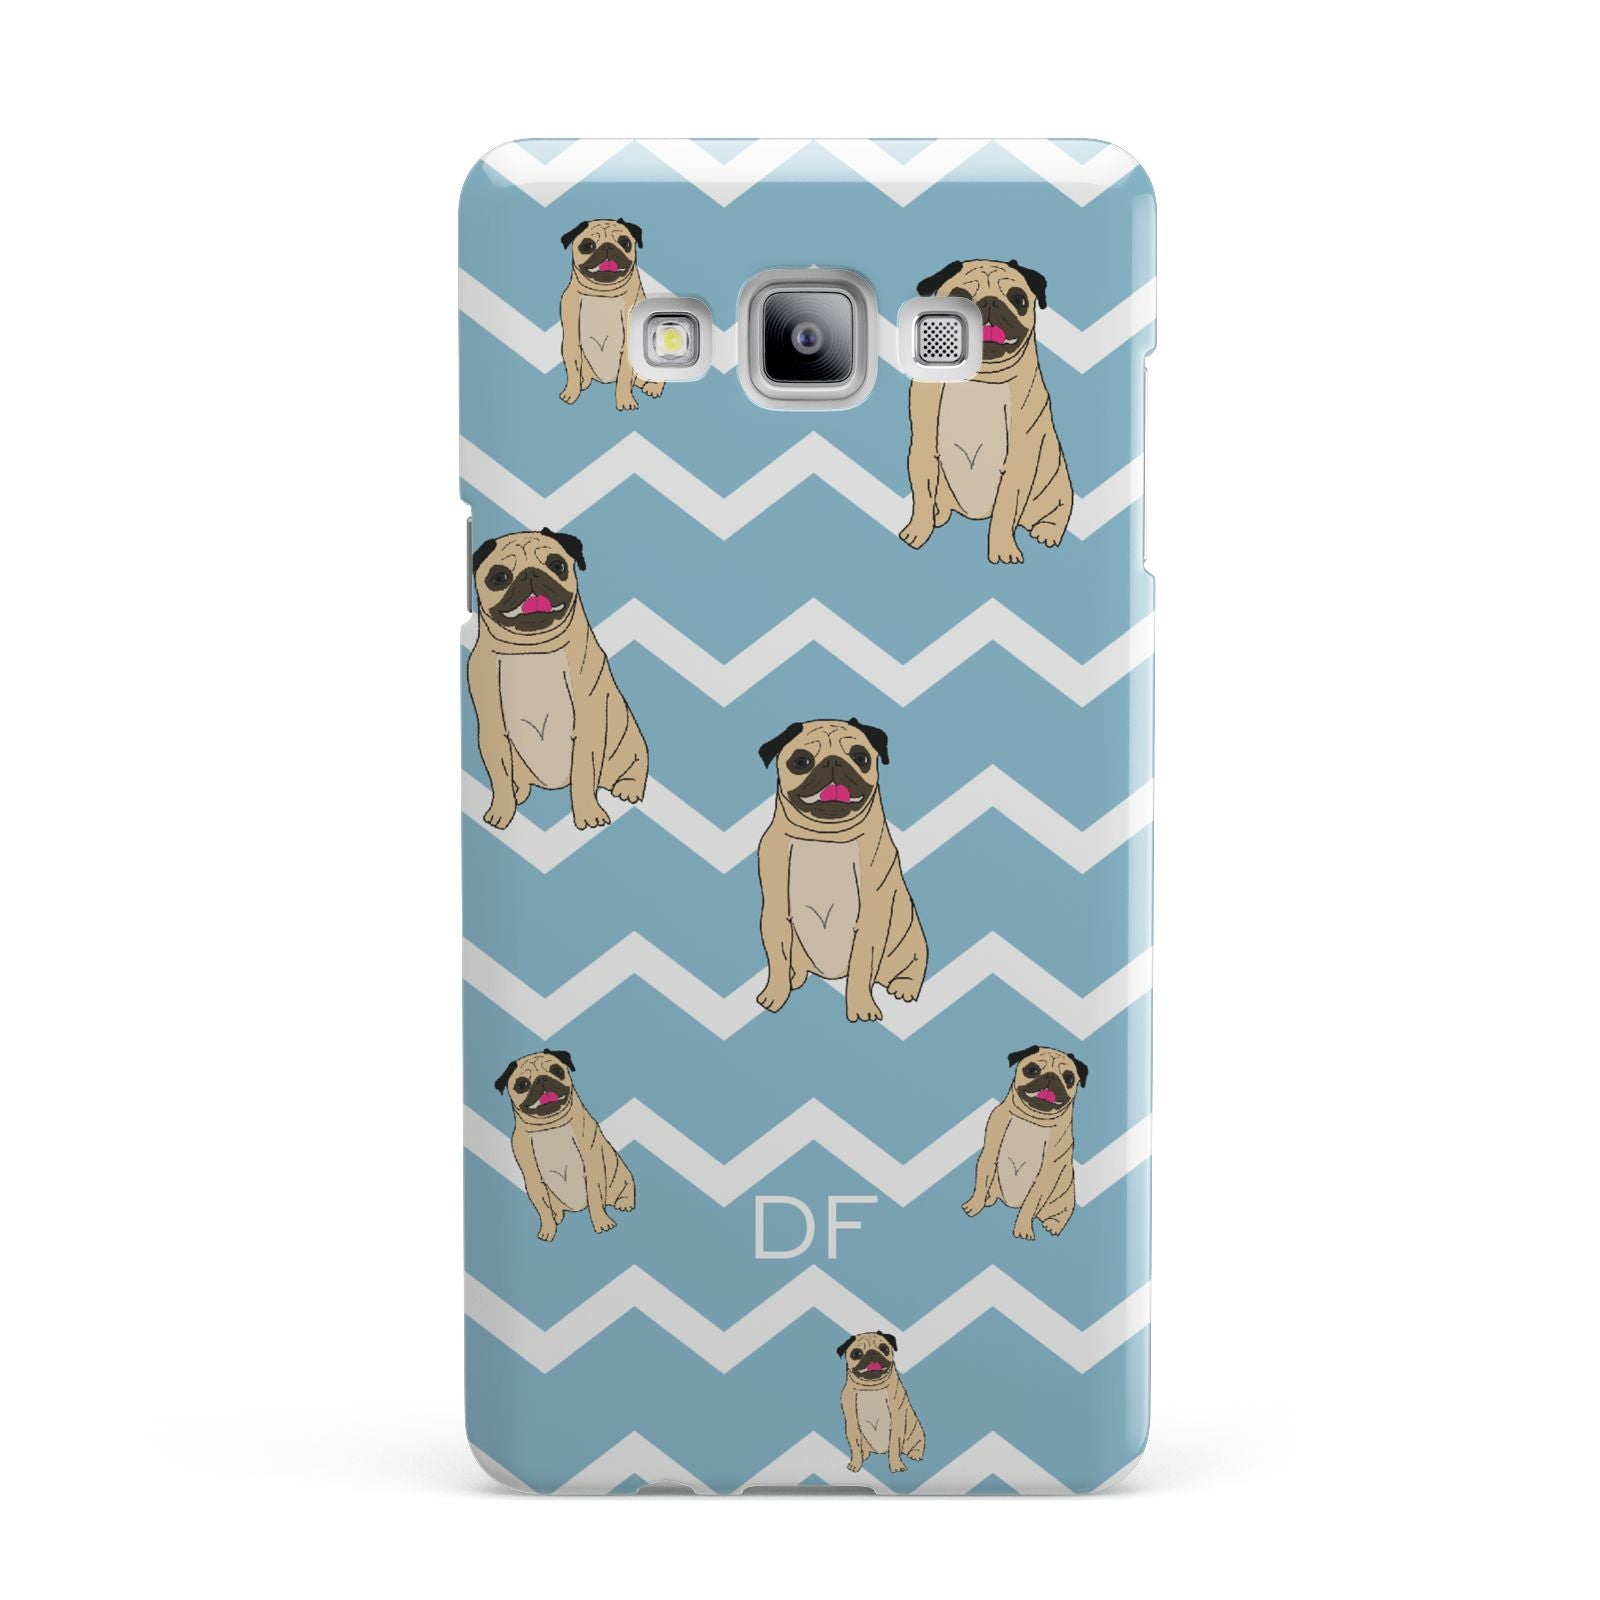 Personalised Pug Initials Samsung Galaxy A7 2015 Case